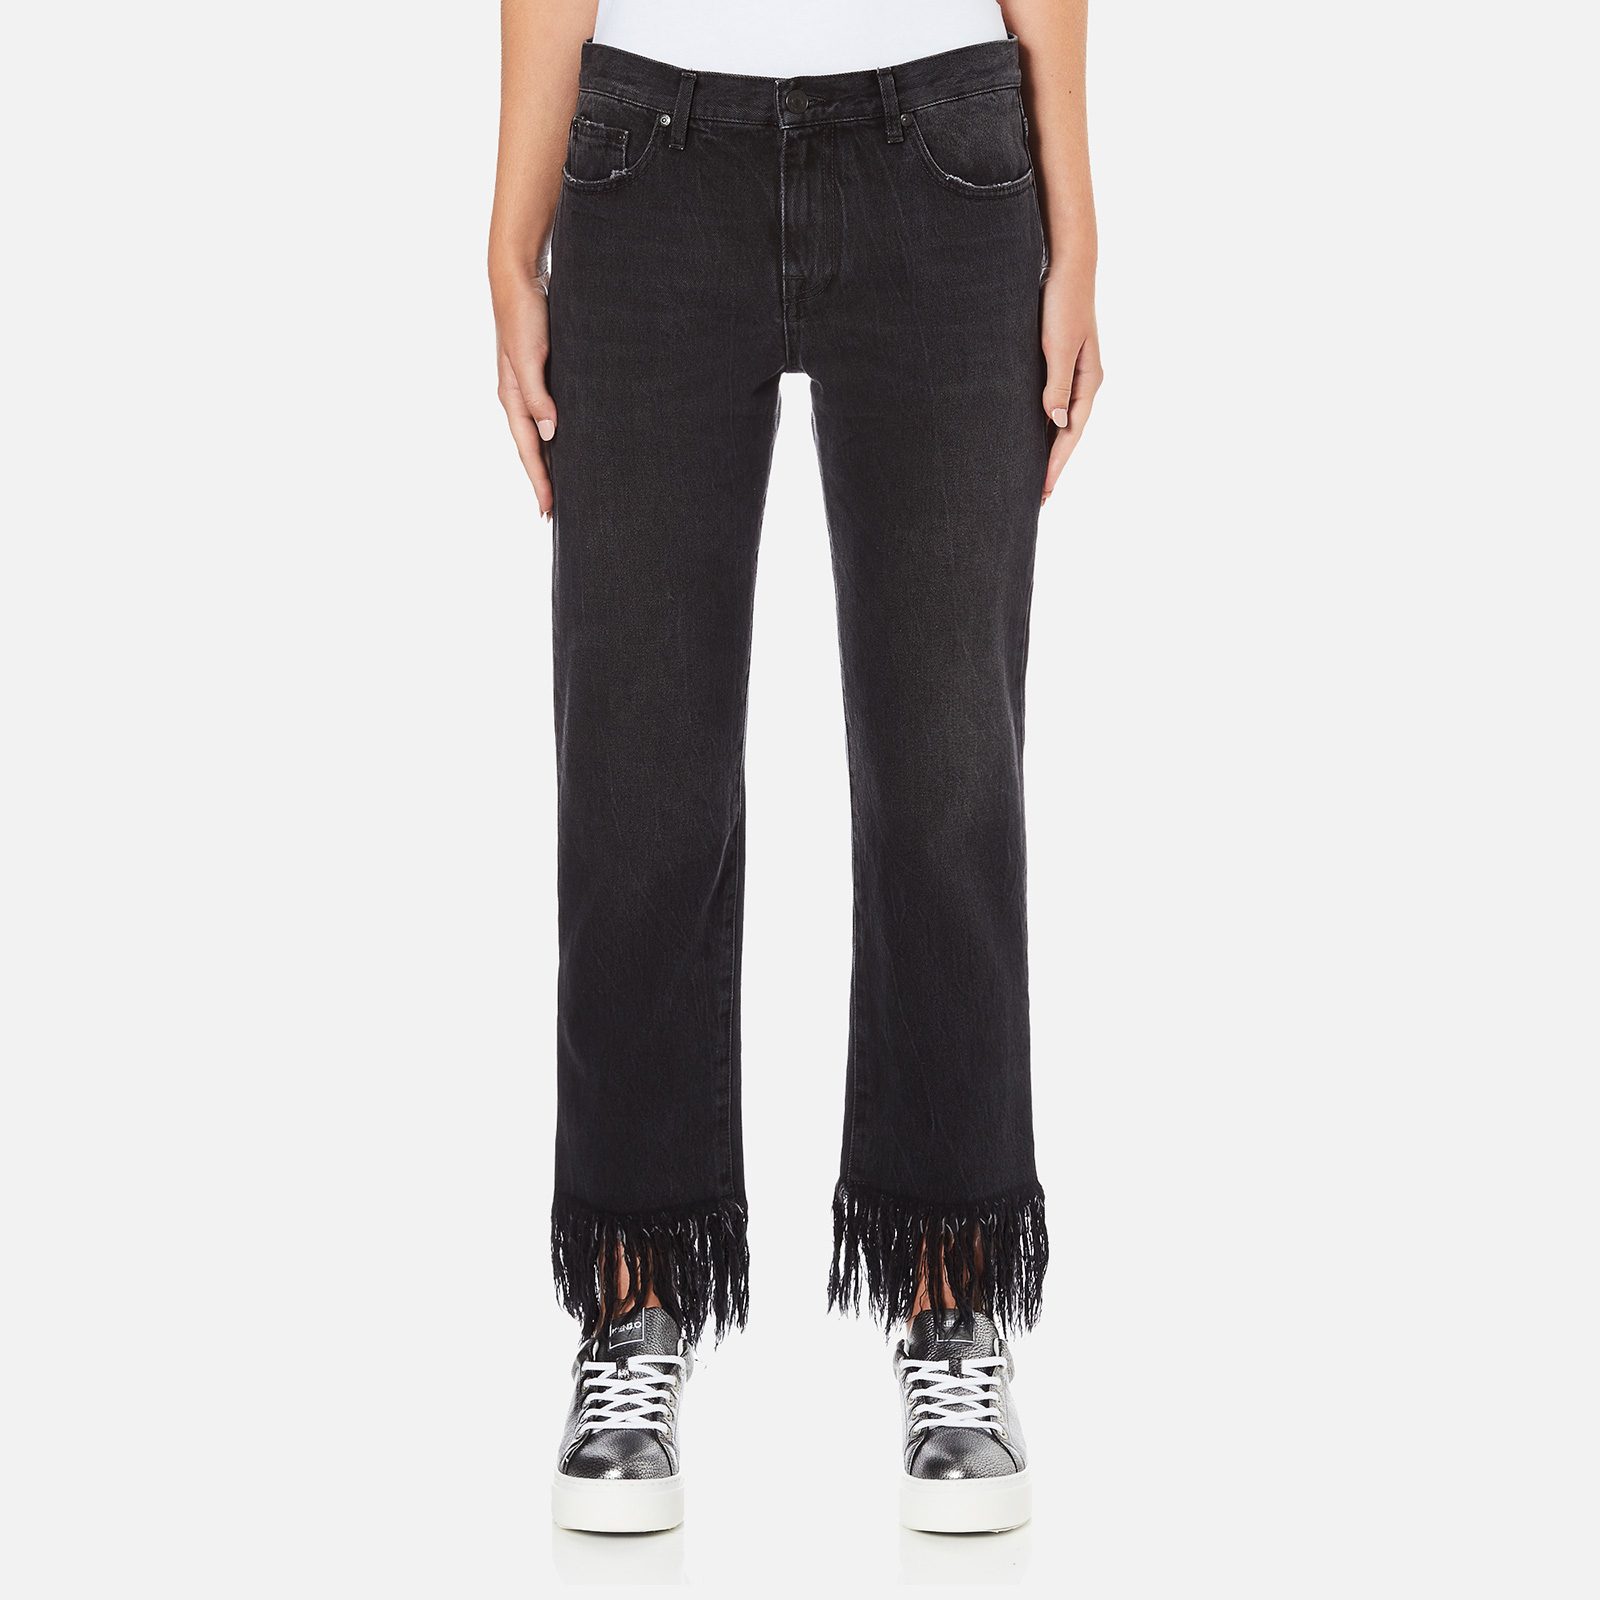 6f54479a4641fd MSGM Women's Fringe Bottom Jeans - Black - Free UK Delivery over £50